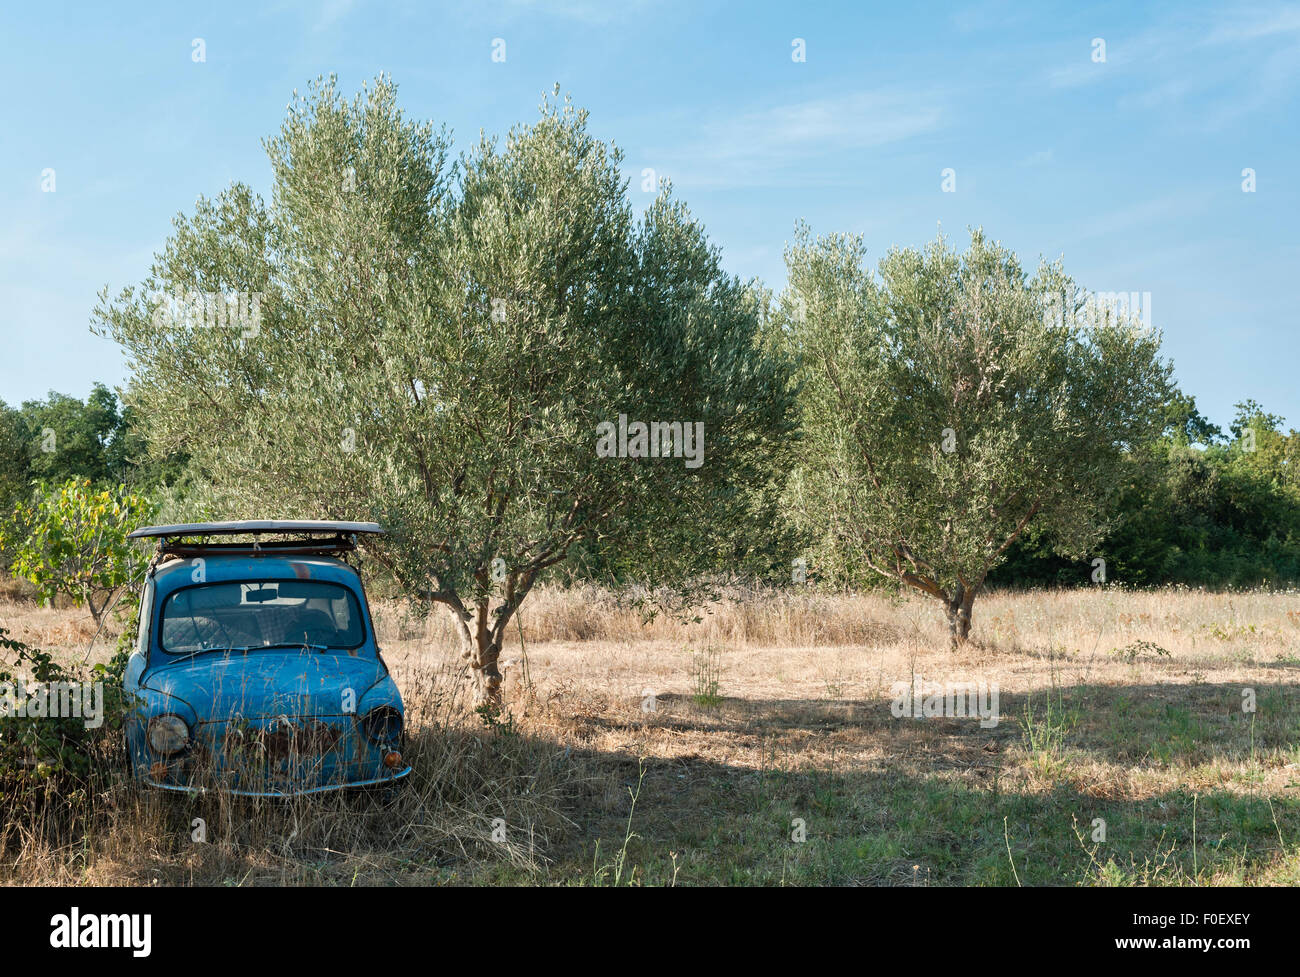 Istria, Croatia. An abandoned car lying in an olive grove on a remote smallholding - Stock Image